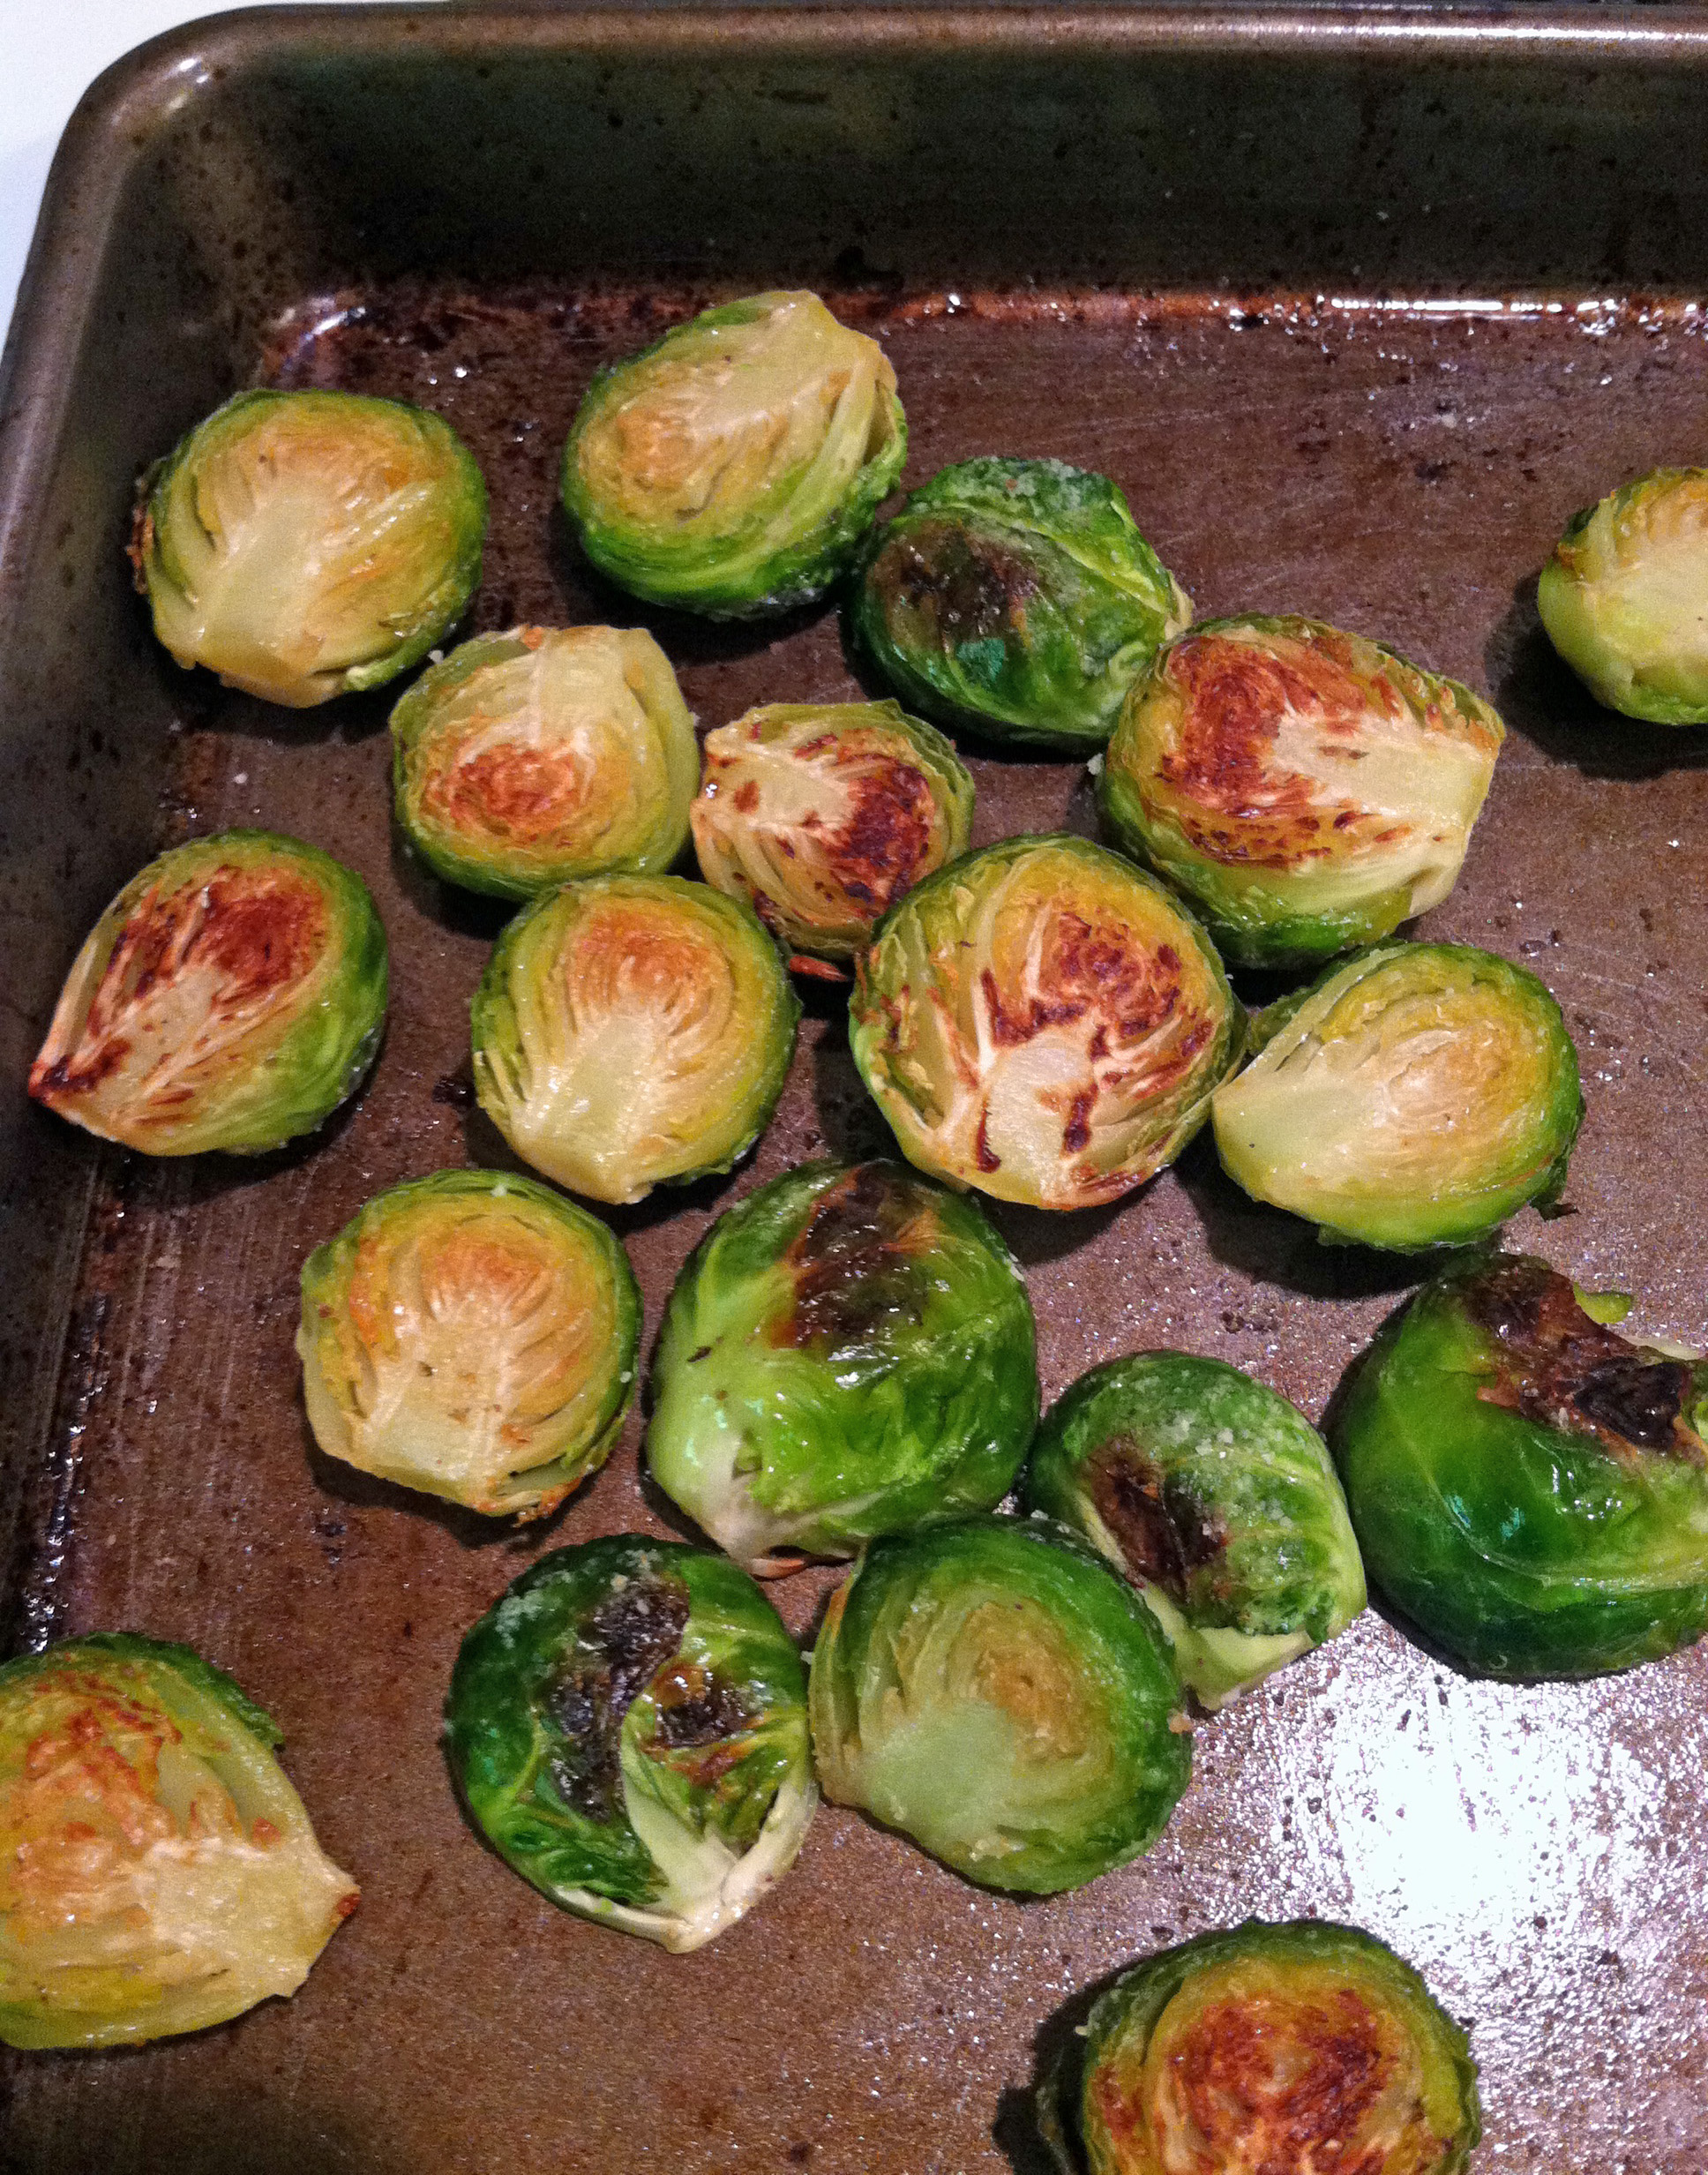 Simple Roasted Brussels Sprouts | In the kitchen with Kath